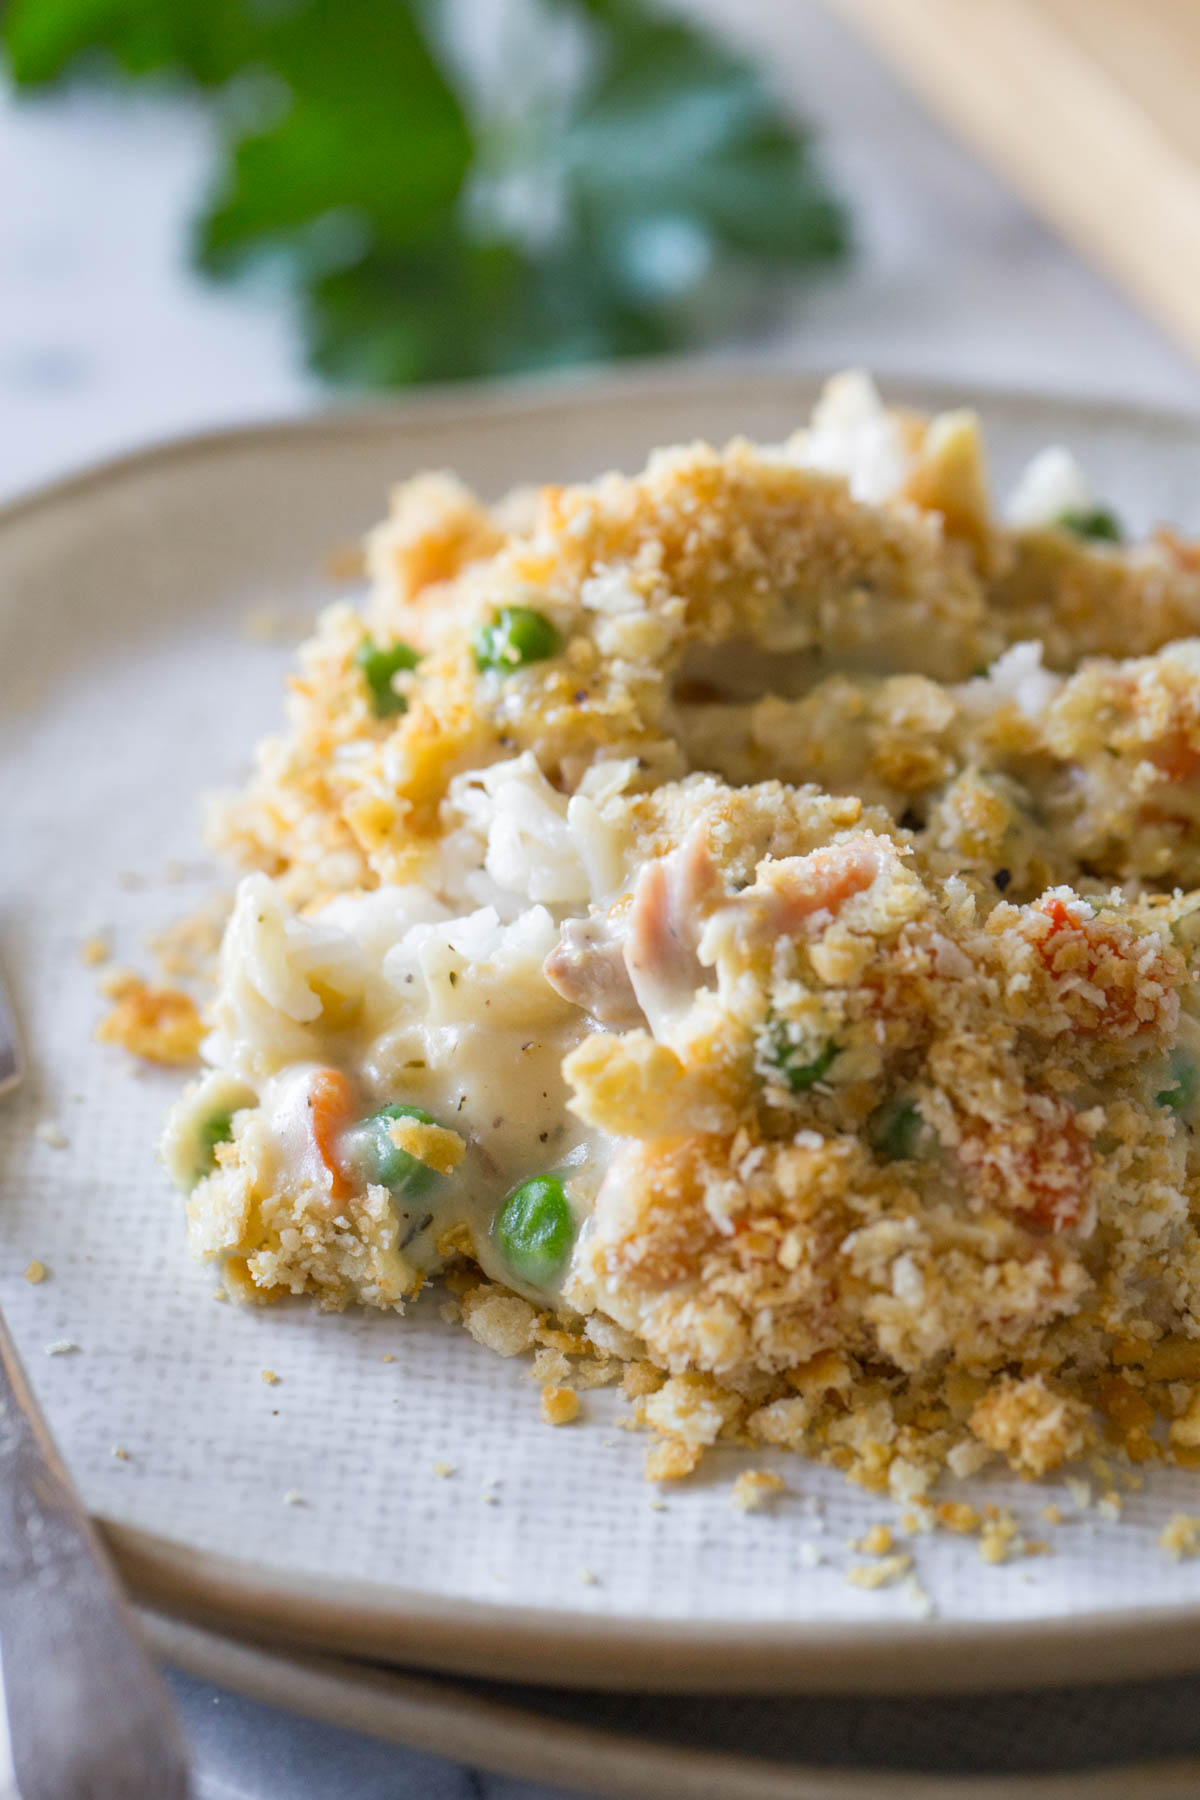 Close up view of Creamy Chicken and Rice Bake on a white plate.